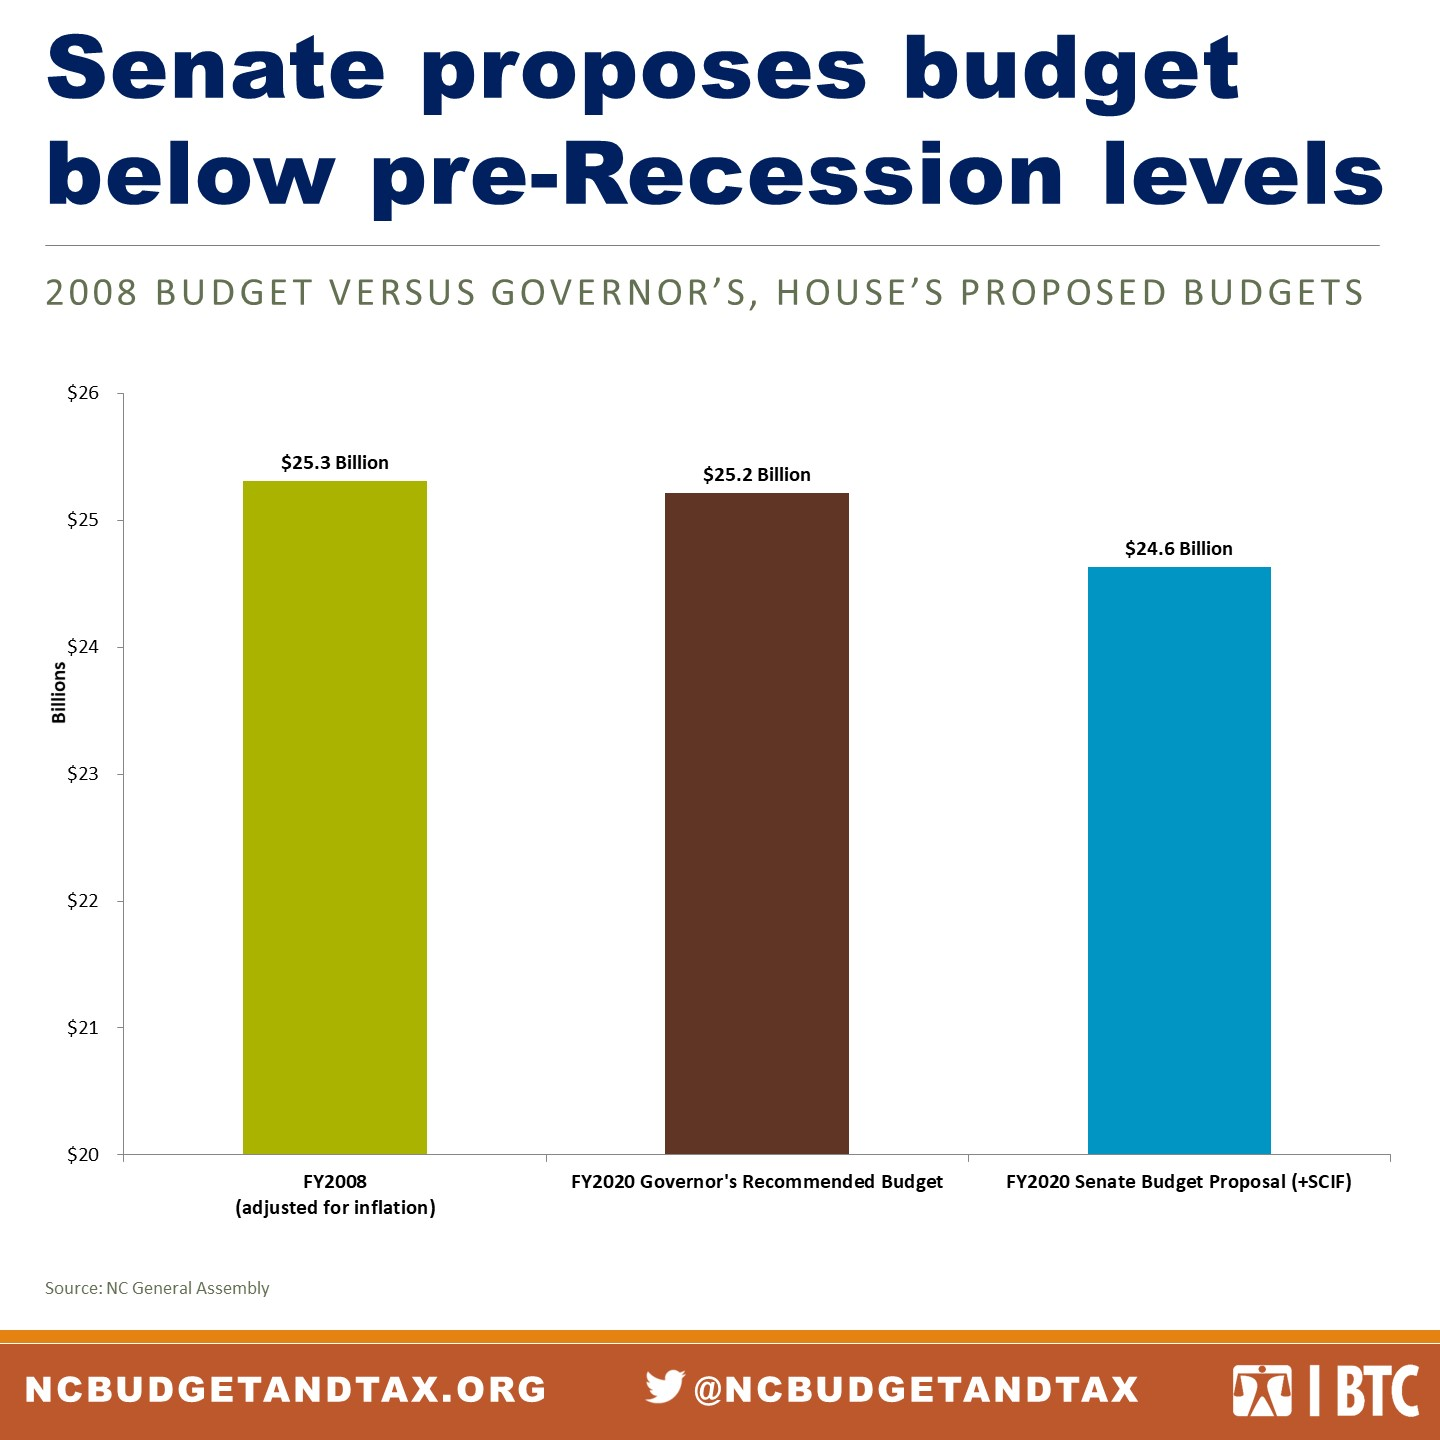 House Senate Bills Would Cut Ed Dept >> Senate S Budget Proposal Is Worse Than House S By Most Measures